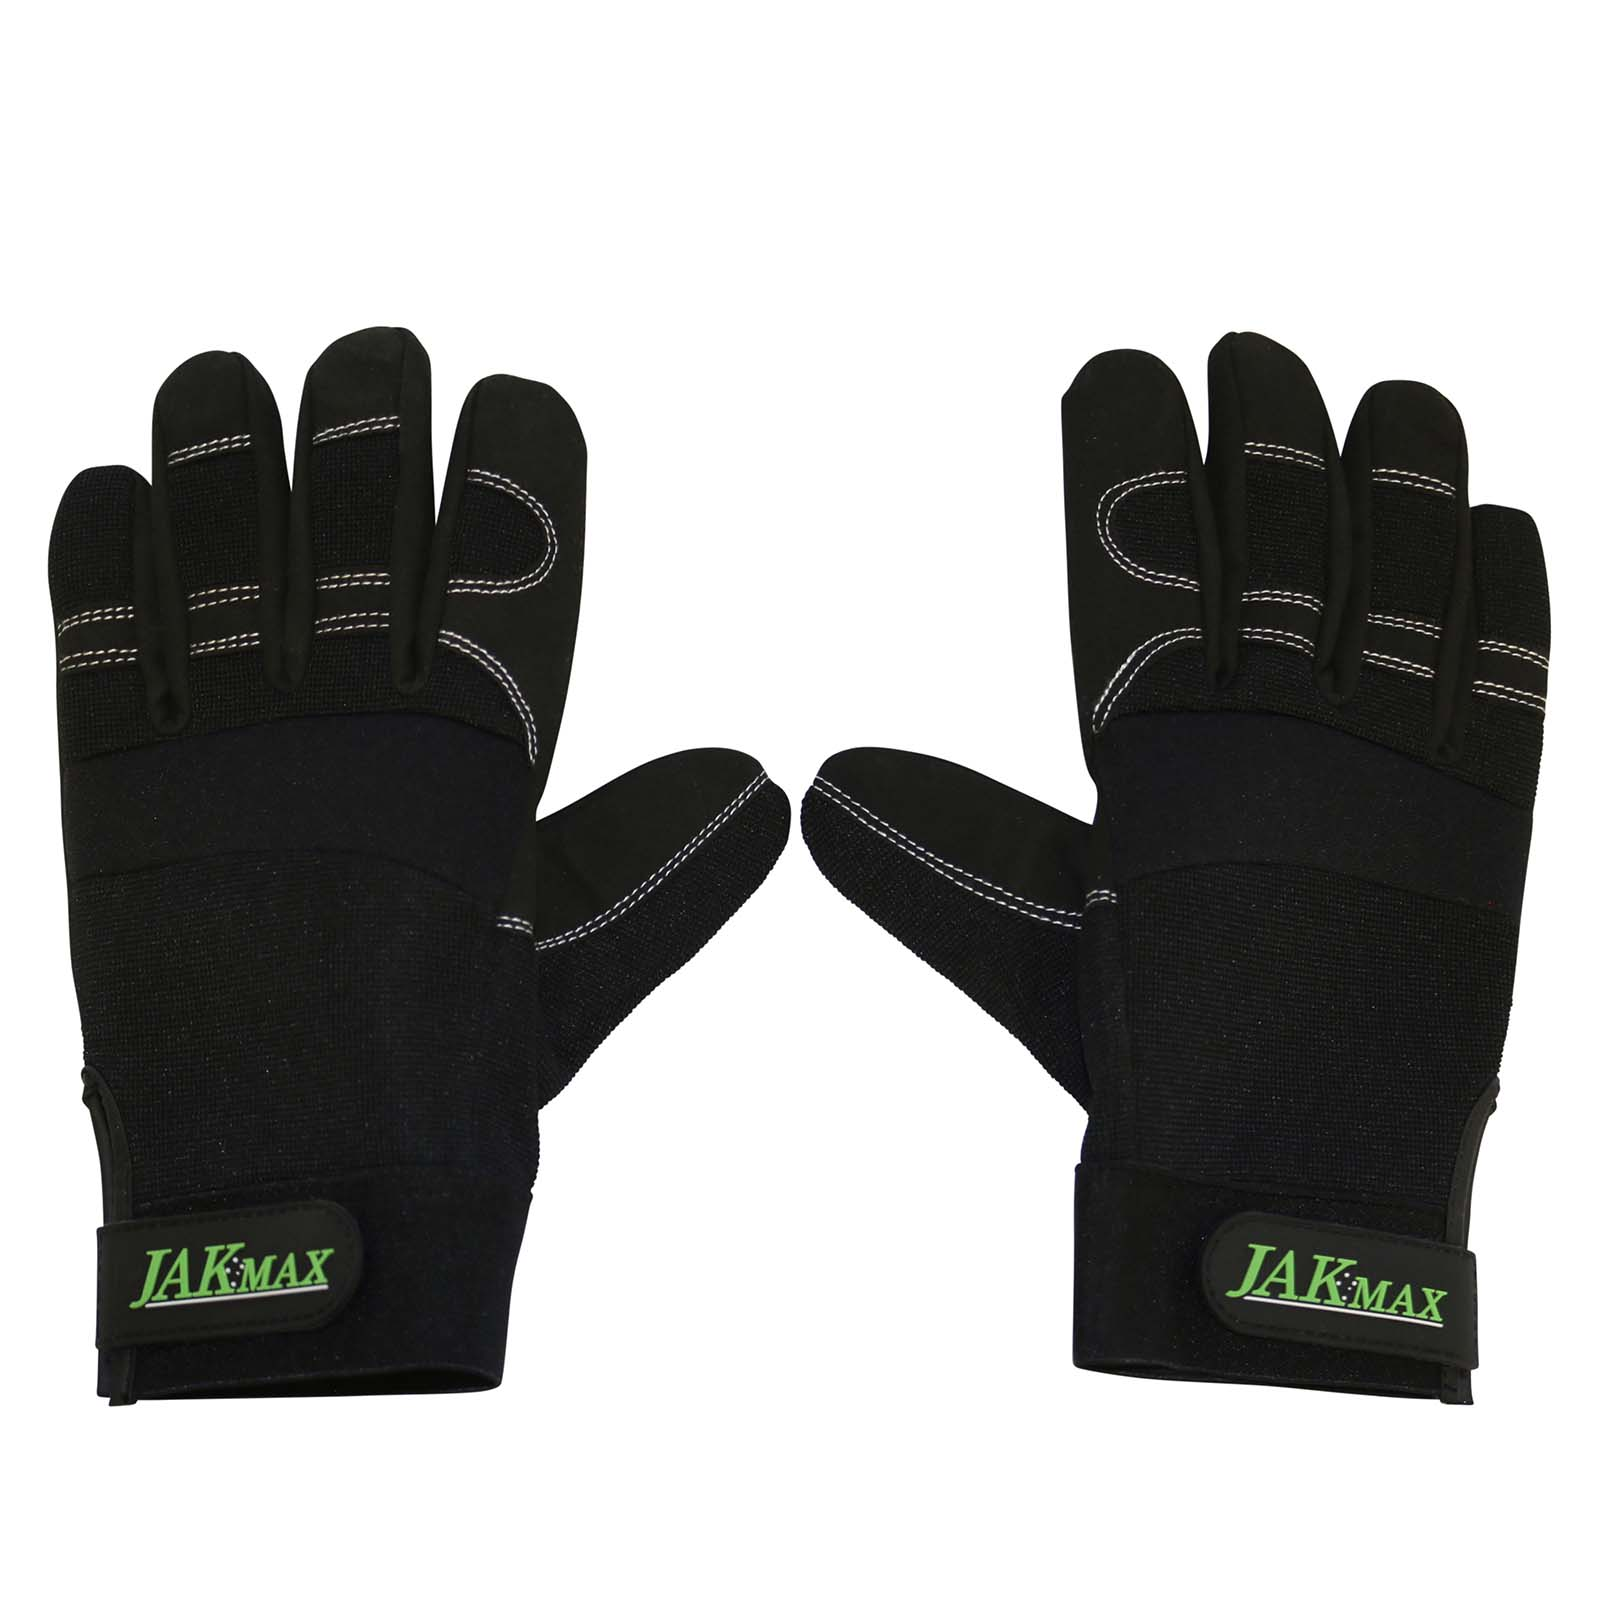 Anti Vibration Lawn Mower Brushcutter Gloves